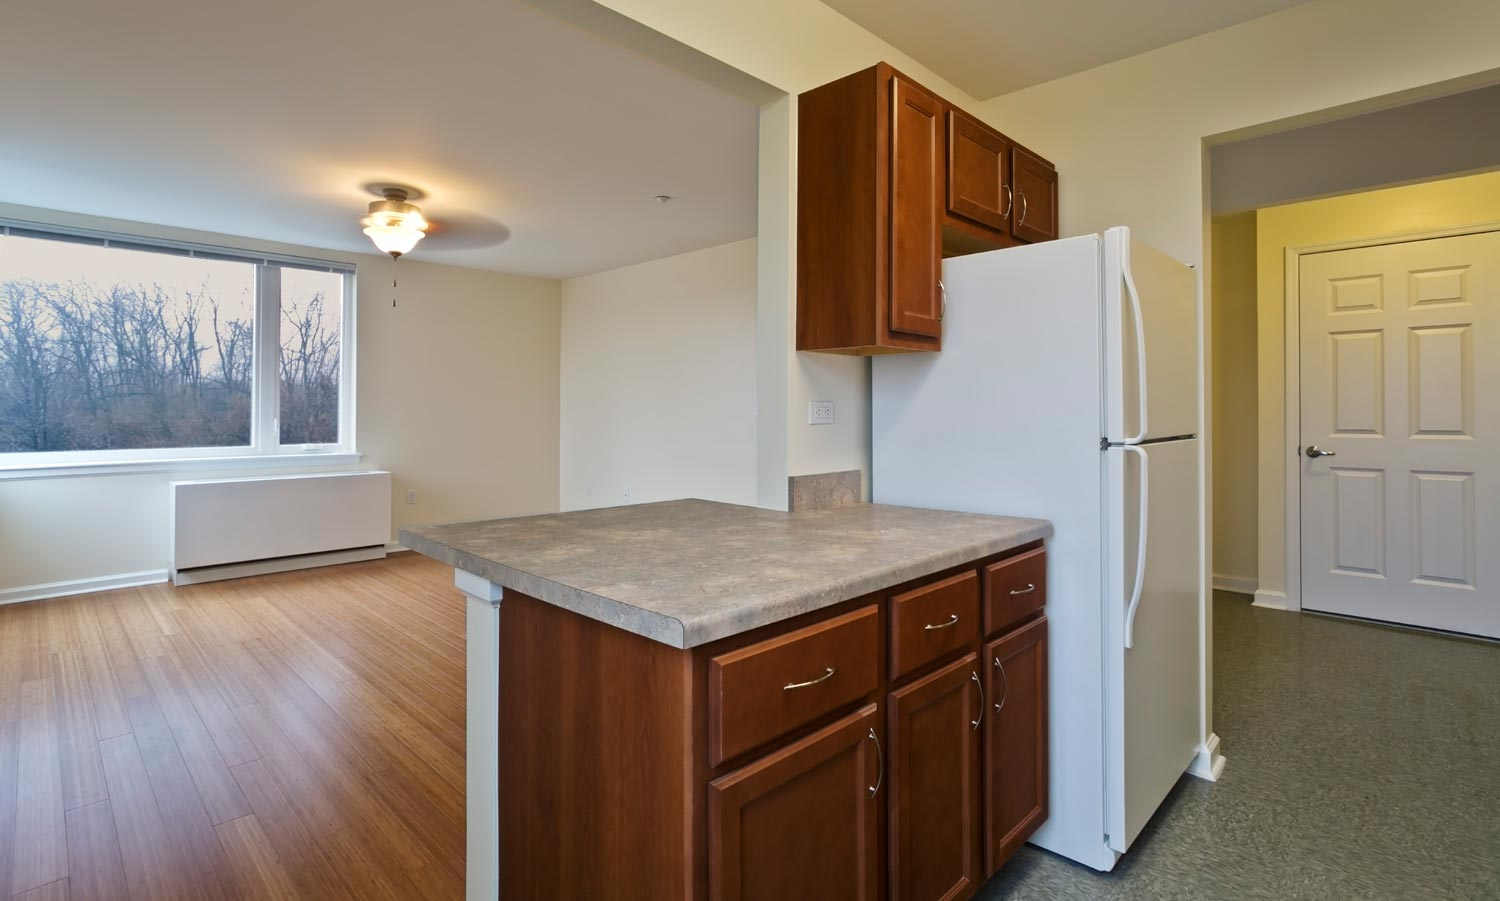 The studios and one-bedrooms at The Friedrichs were designed with open kitchens.